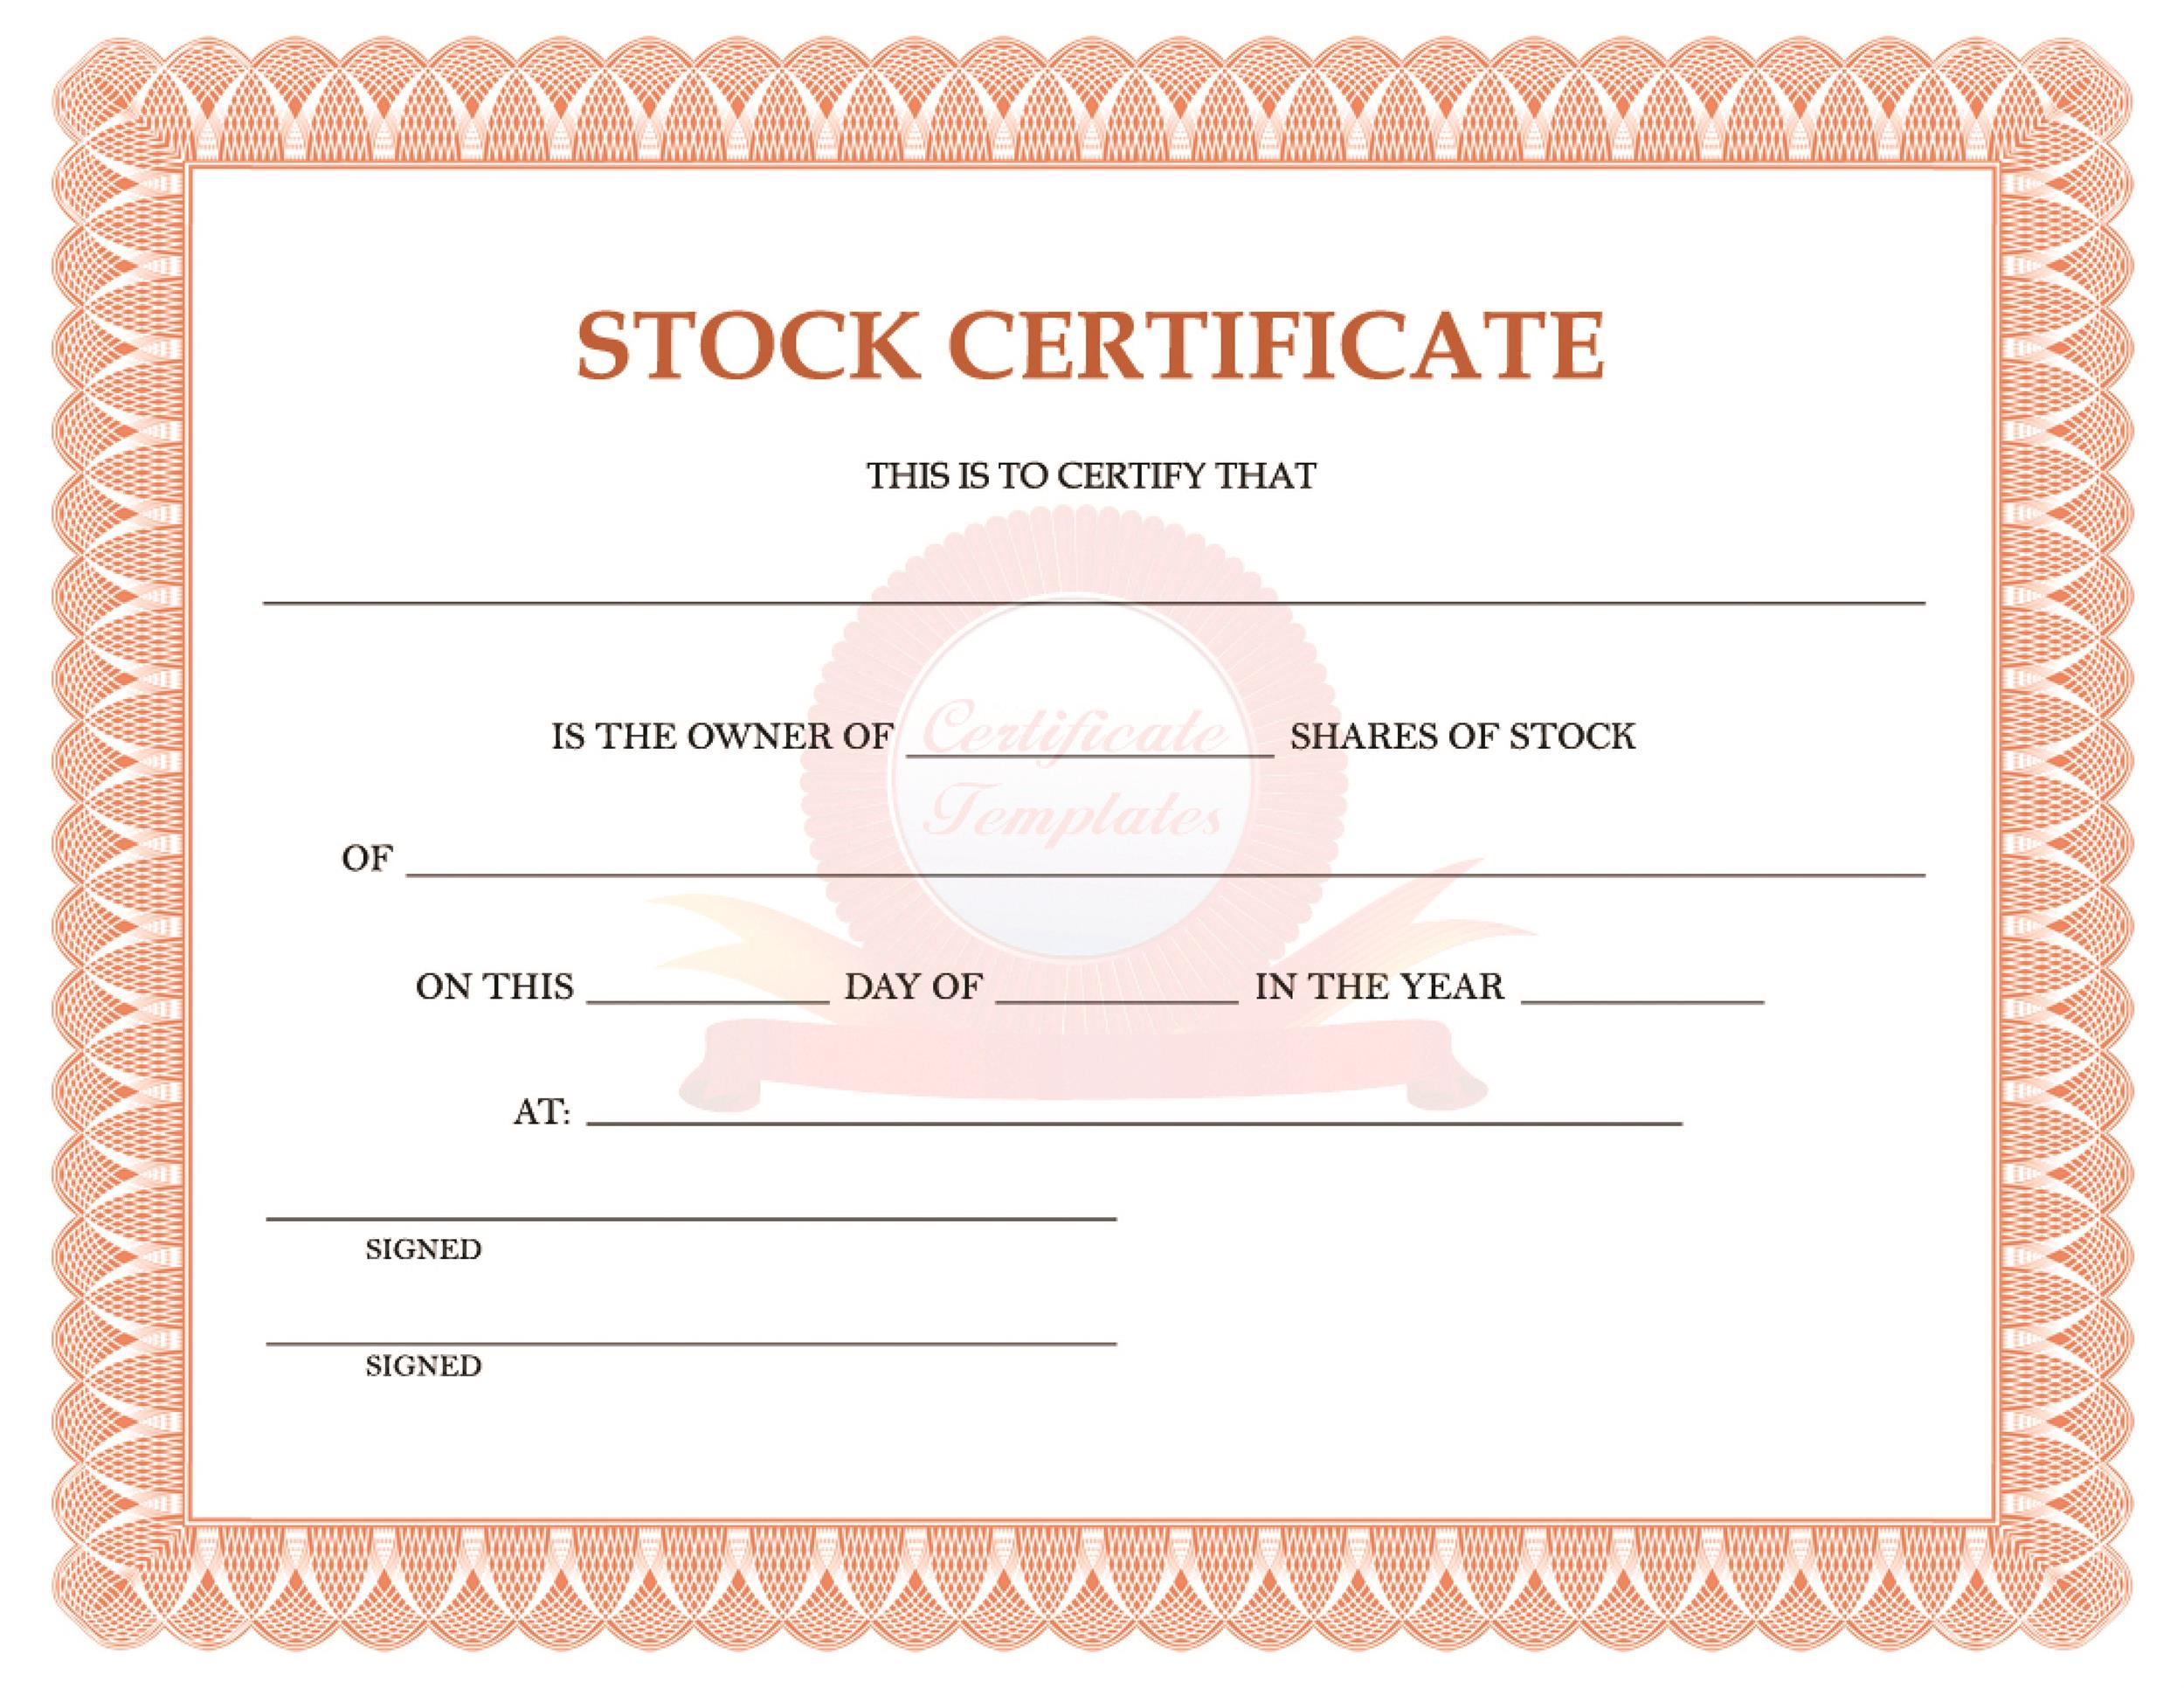 Share Certificate Template Free Download. Rainbow Factory Stock